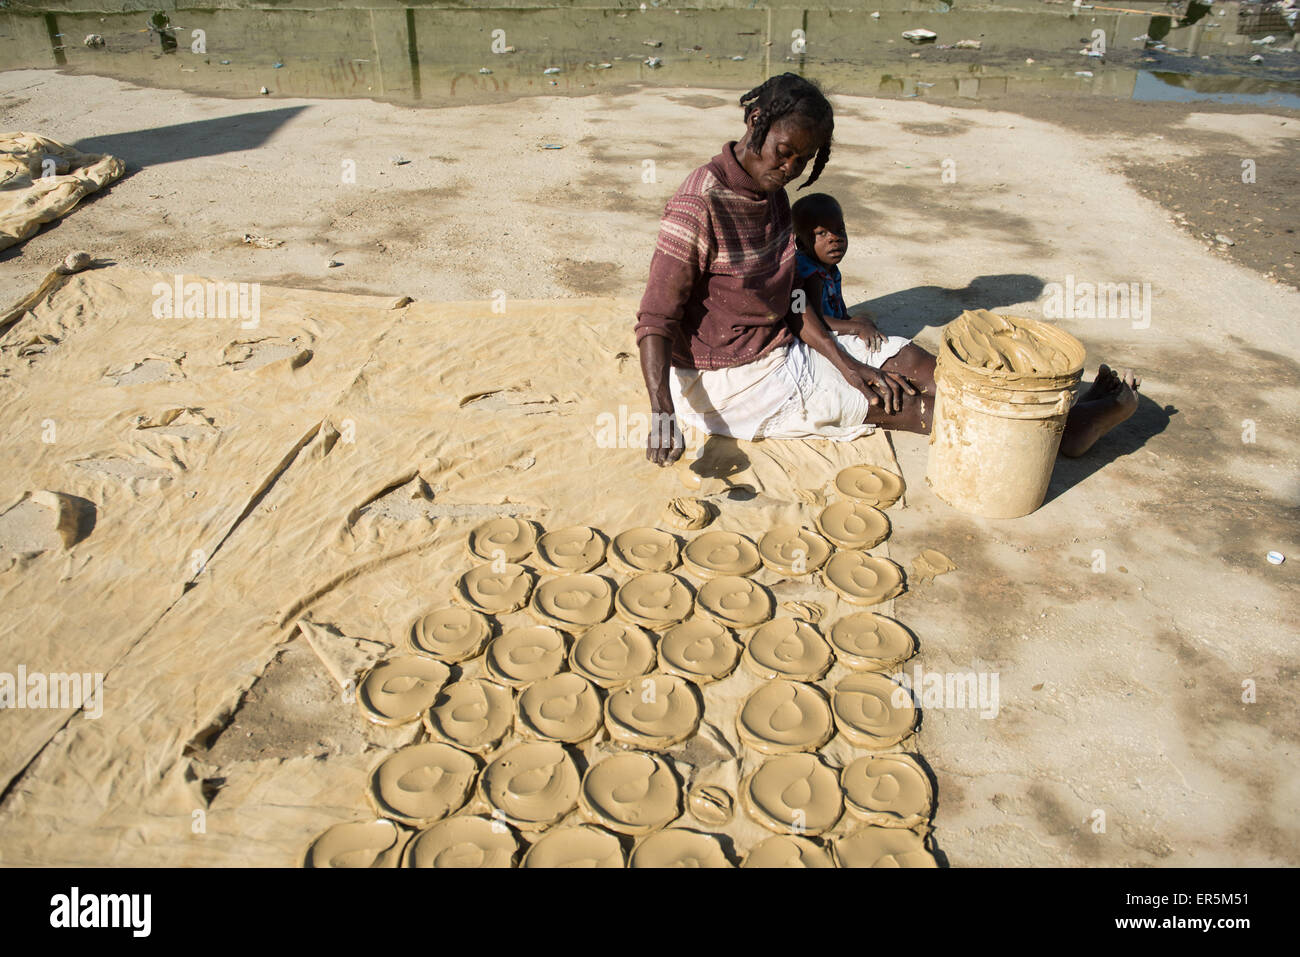 (150528) -- PORT AU PRINCE, May 28, 2015 (Xinhua) -- A woman places mud cookies to sun drying in the city of Port - Stock Image